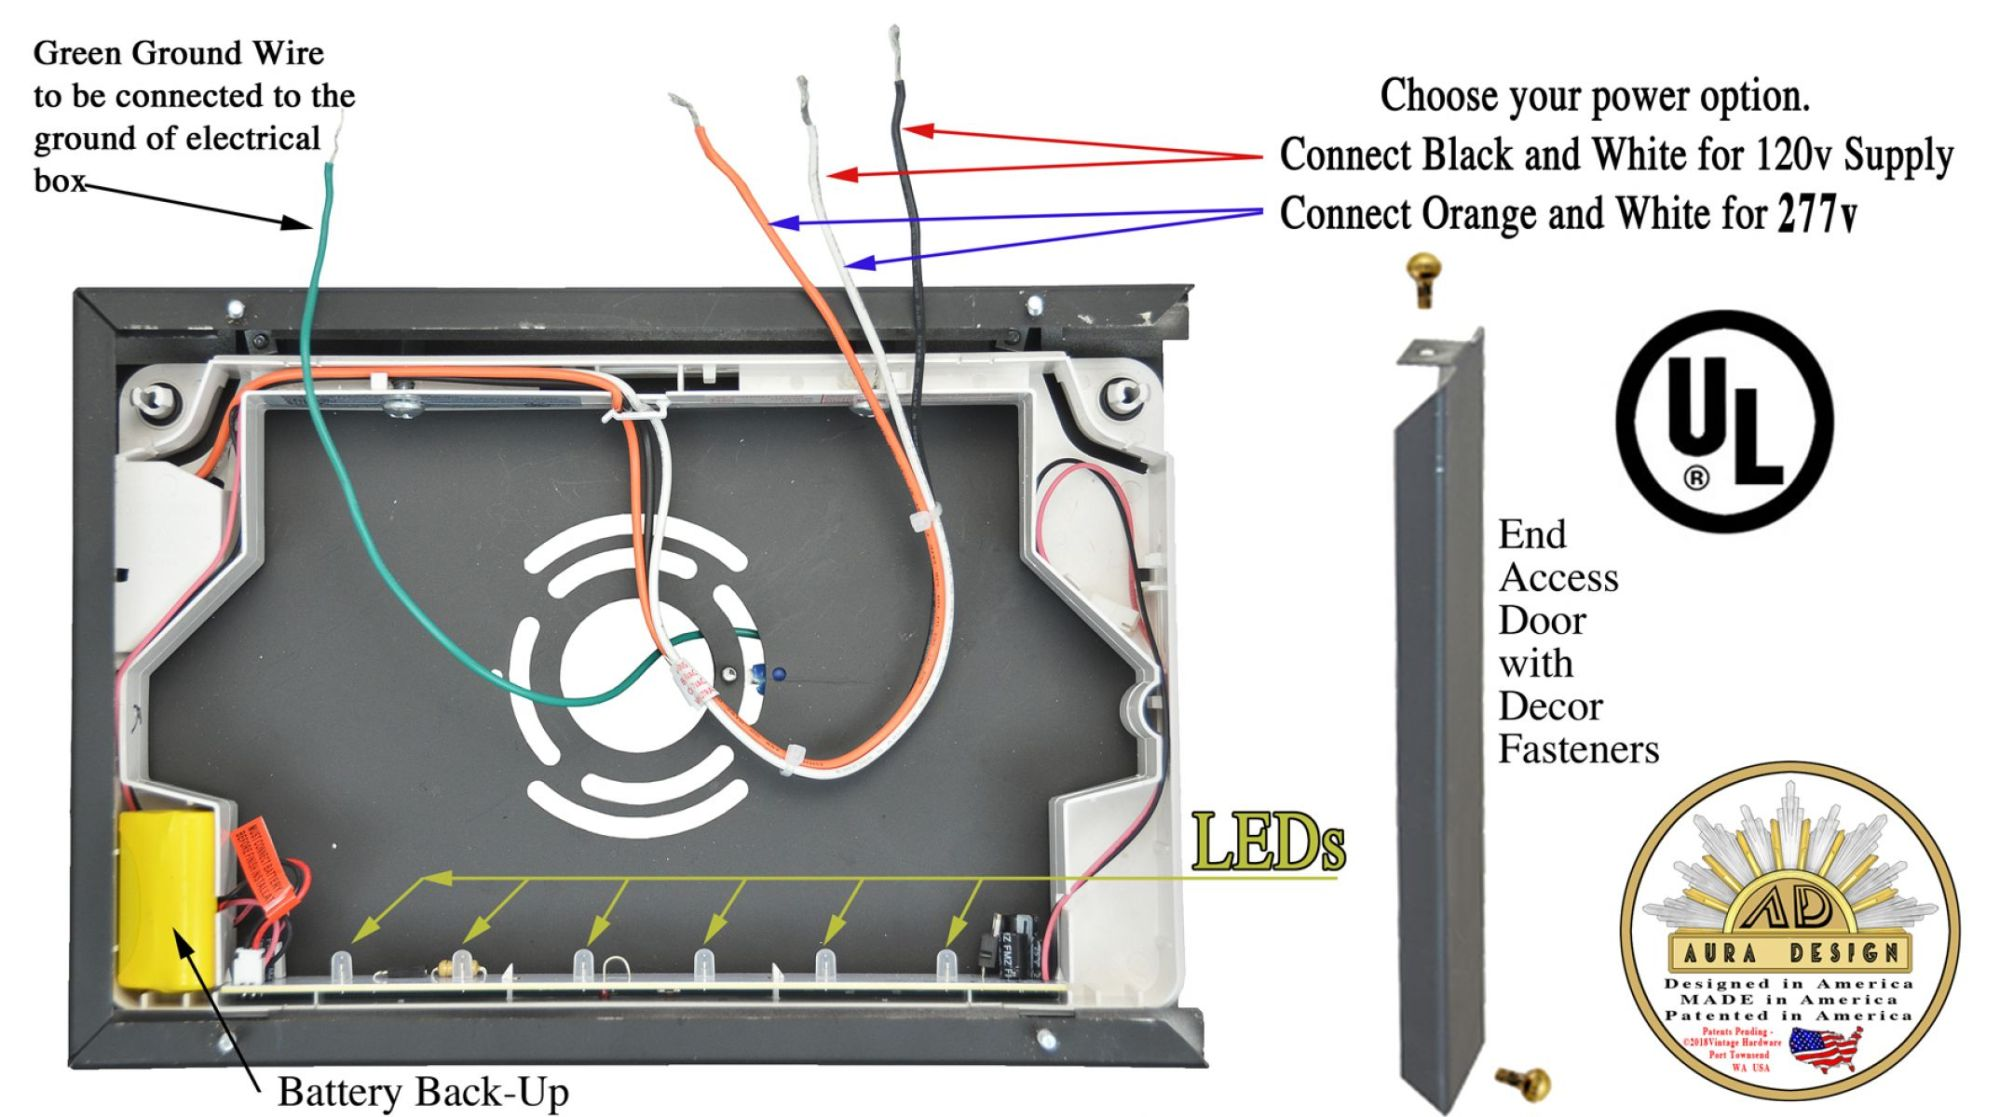 hight resolution of exit sign wiring diagram 277v wiring diagram siteexit sign wiring diagram 277v wiring diagram fascinating electrical